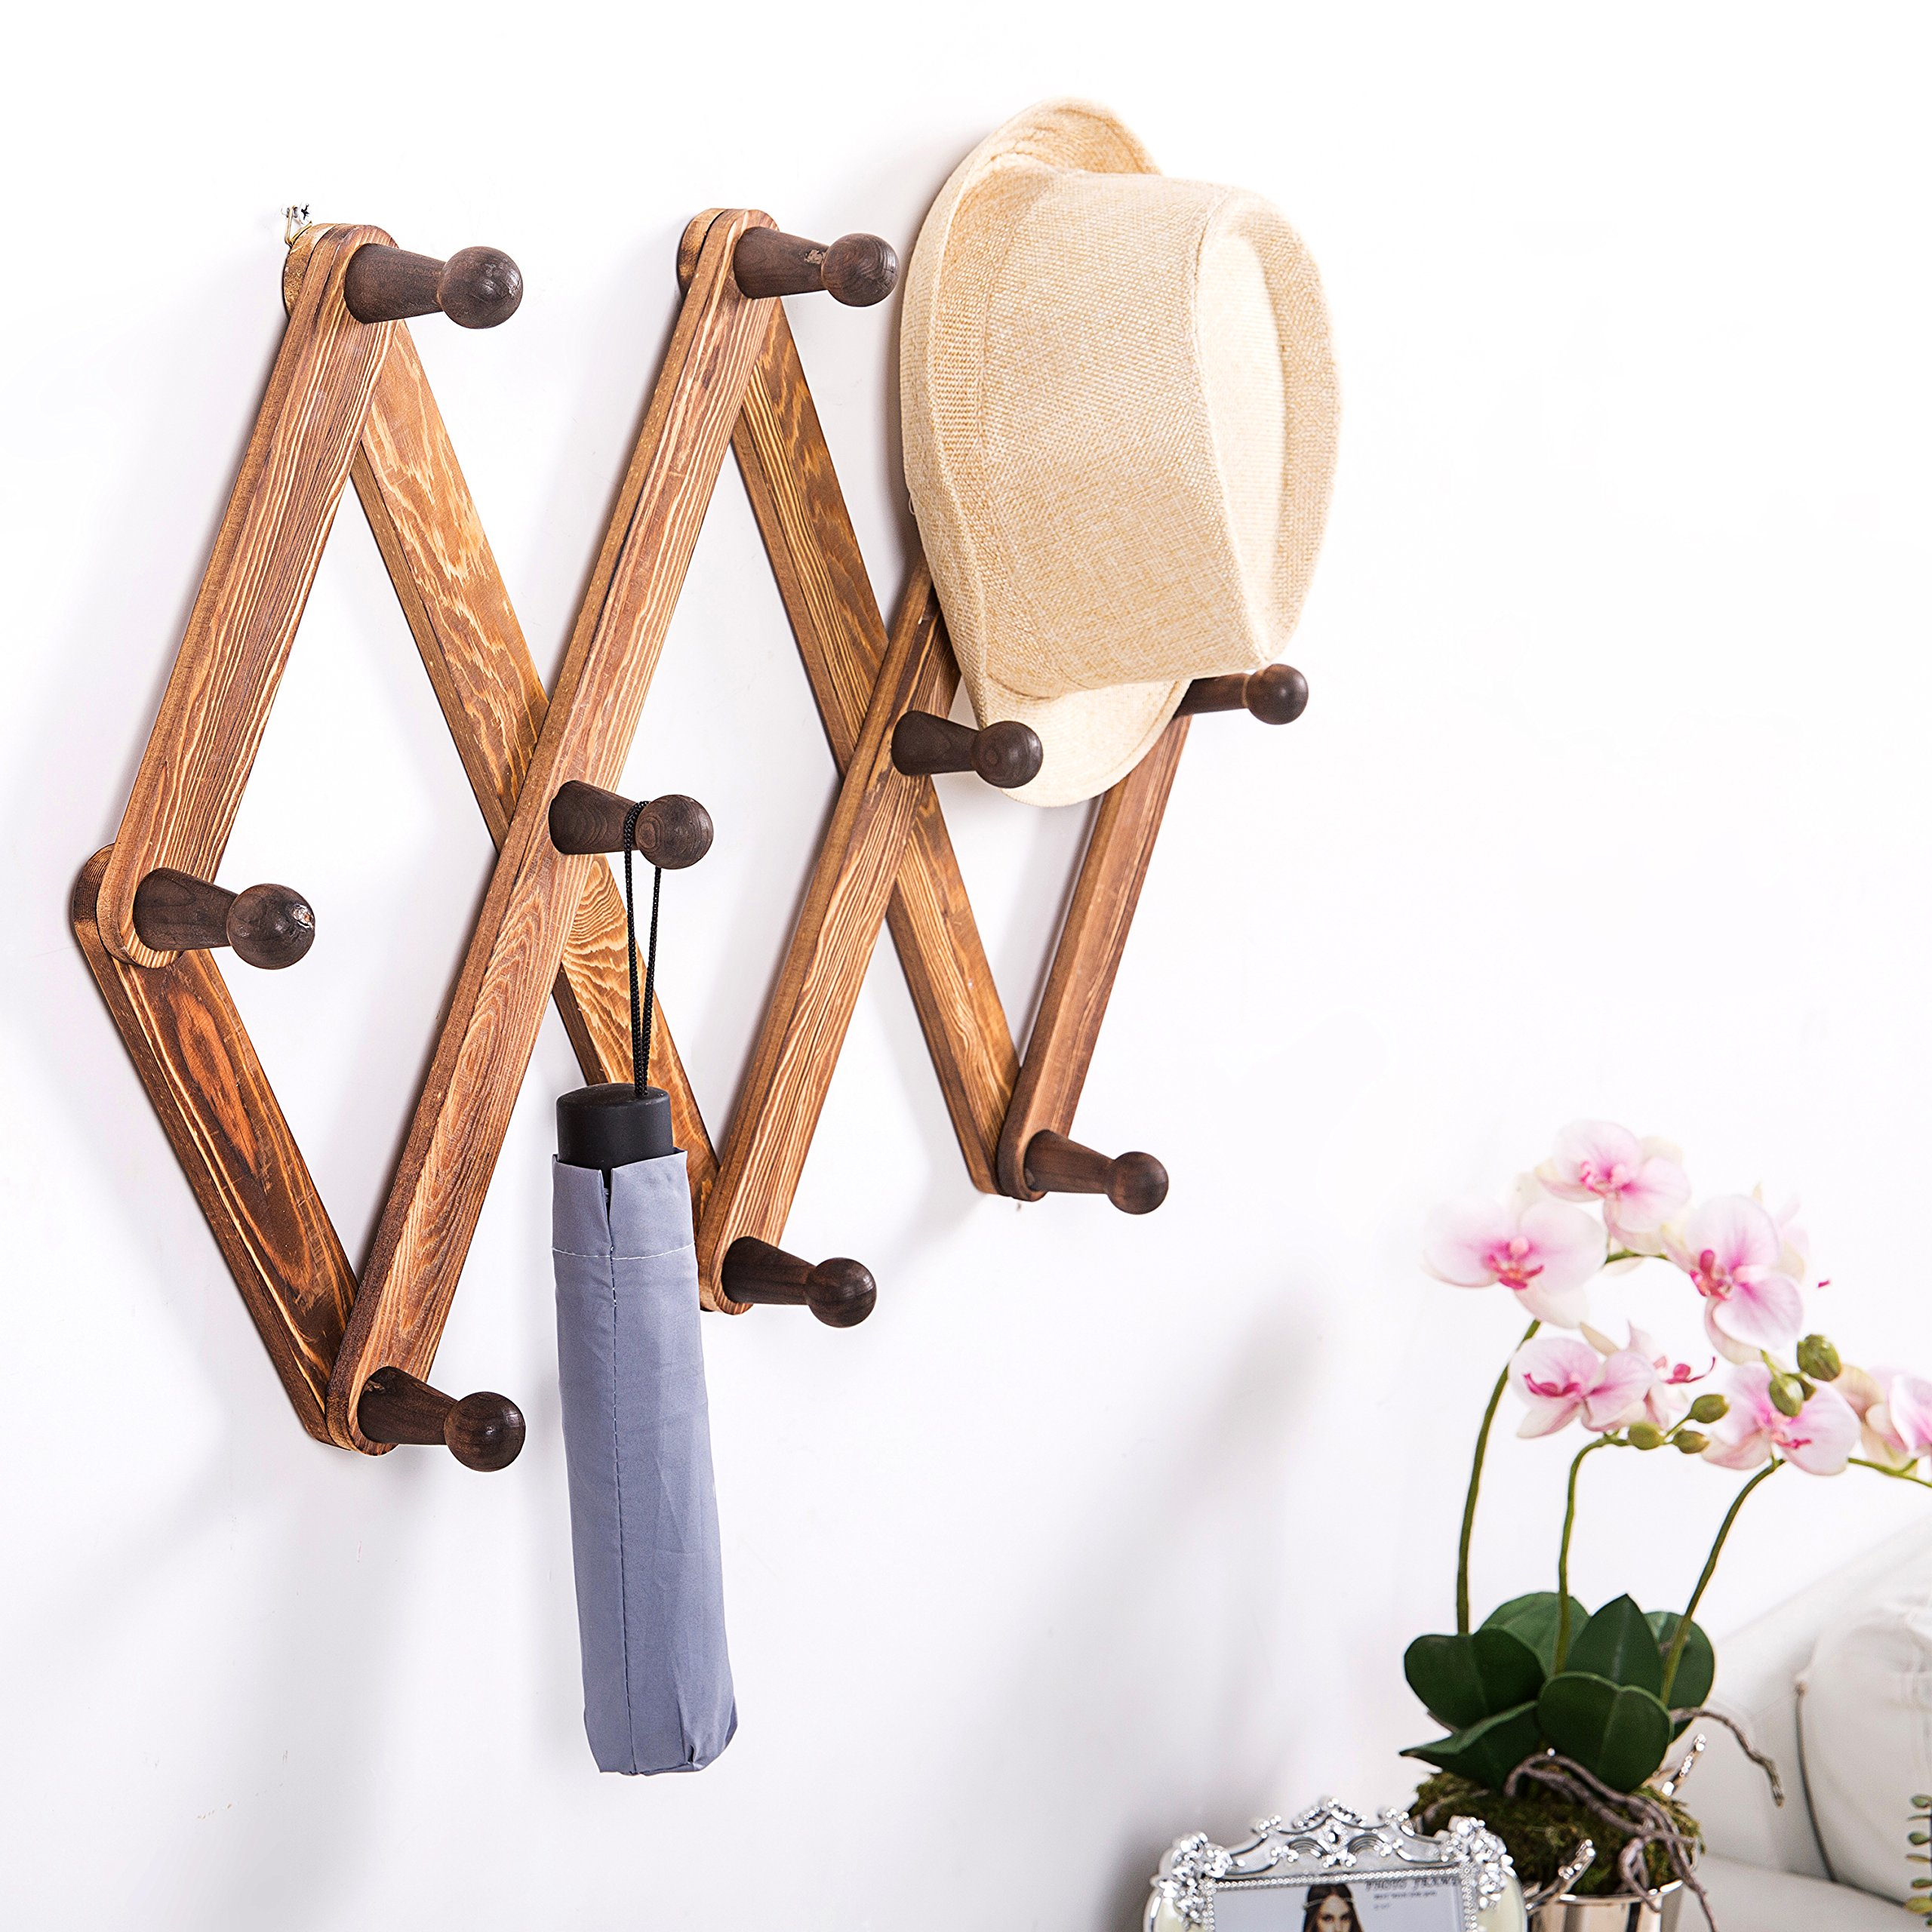 MyGift 10 Hook Torched Wood Wall Mounted Expandable Accordion Peg Coat Rack Hanger by MyGift (Image #2)